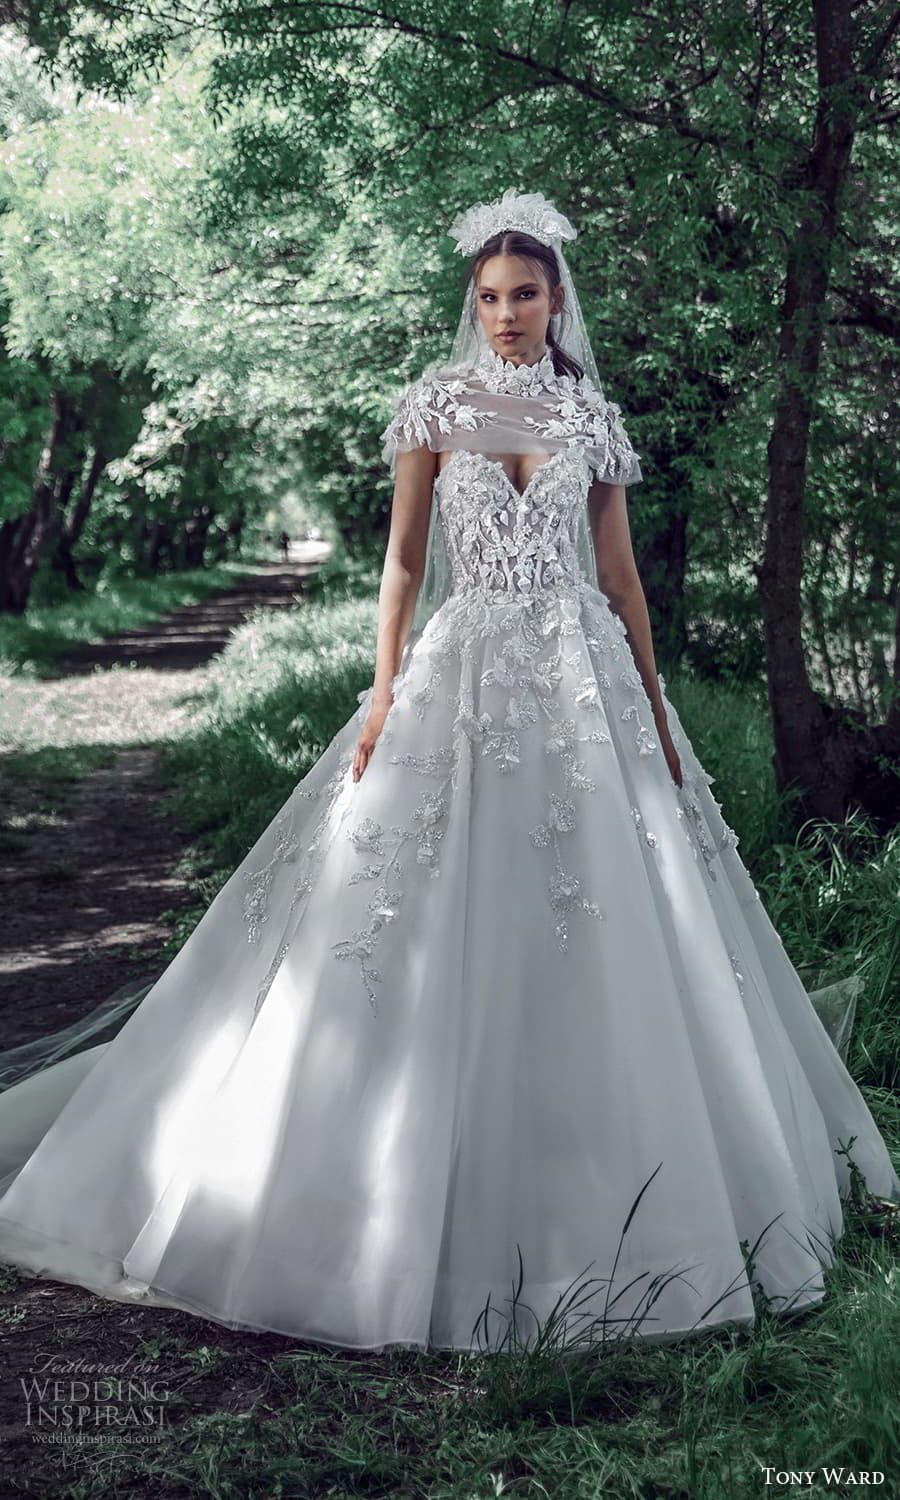 tony ward spring 2022 bridal strapless sweetheart neckline fully embellished a line ball gown wedding dress high neck capelet (10) mv